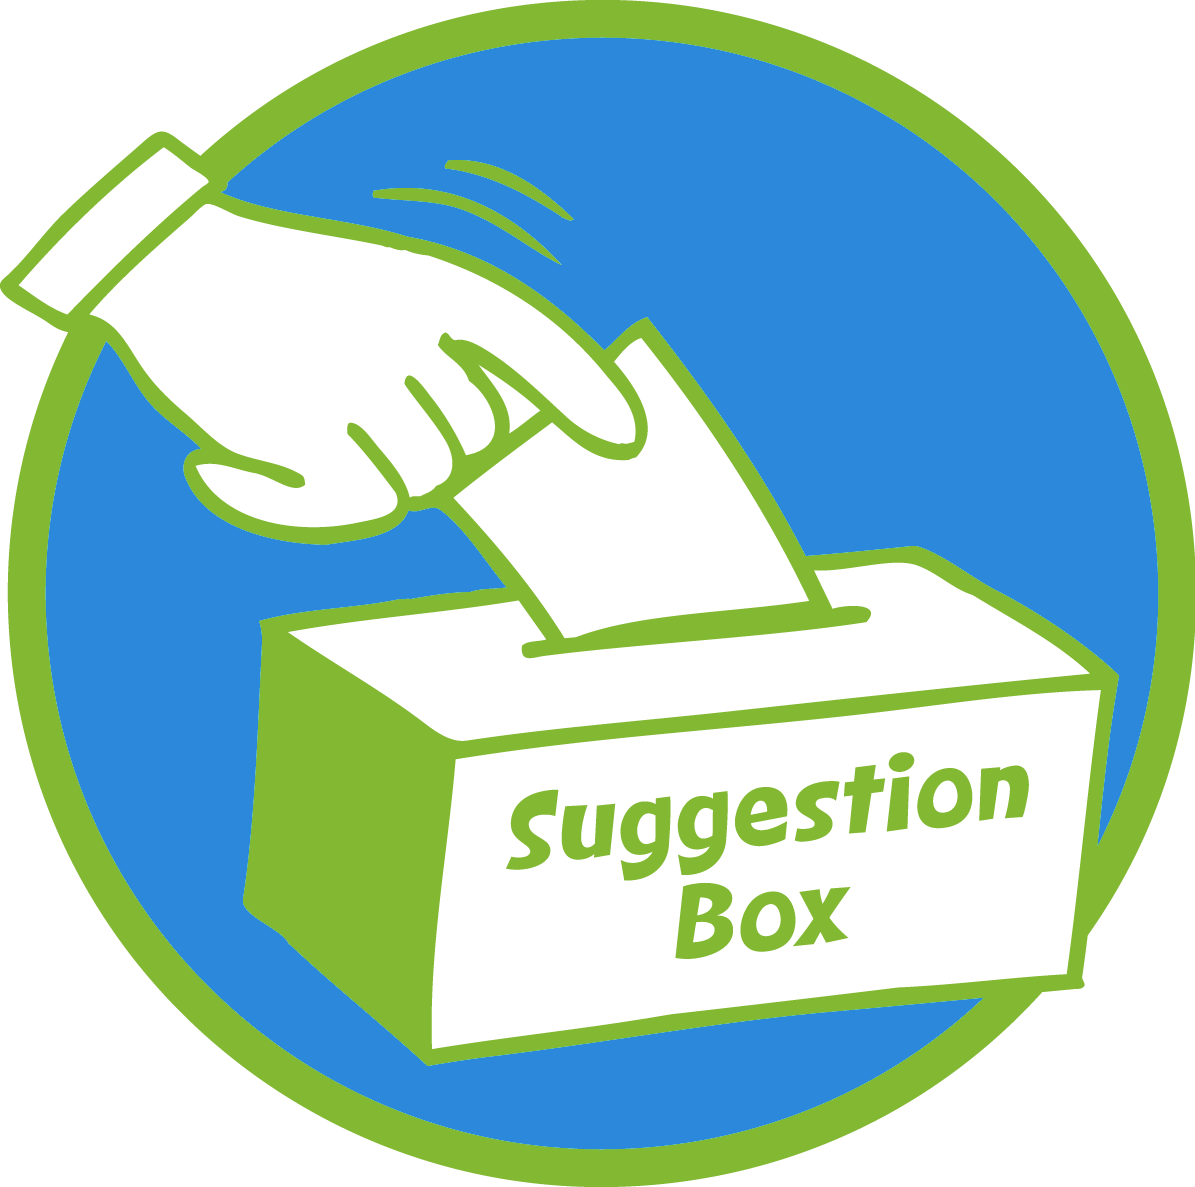 suggestion_box.png